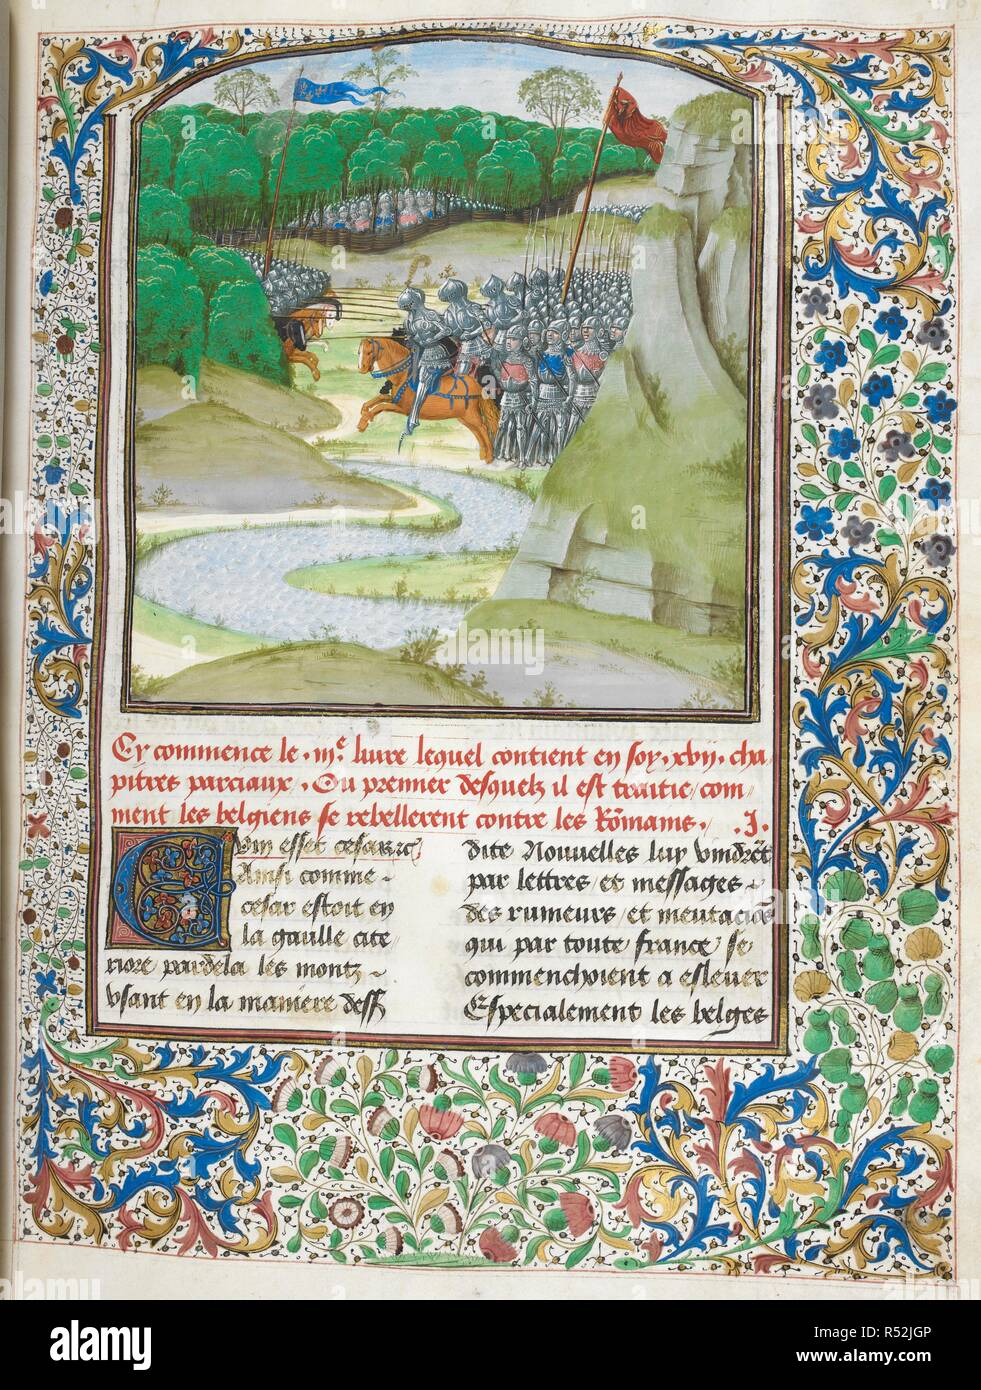 Battle between the Romans and the Gauls (Book 3). Caesar, translated by Jan Du Quesne (or Jean Duchesne), Bellum Gallicum ( Les commentaires de Cesar ). 1473-1476. Source: Royal 16 G. VIII f.116. Language: French. Author: JULIUS CAESAR. Du Quesne, Jehan. - Stock Image